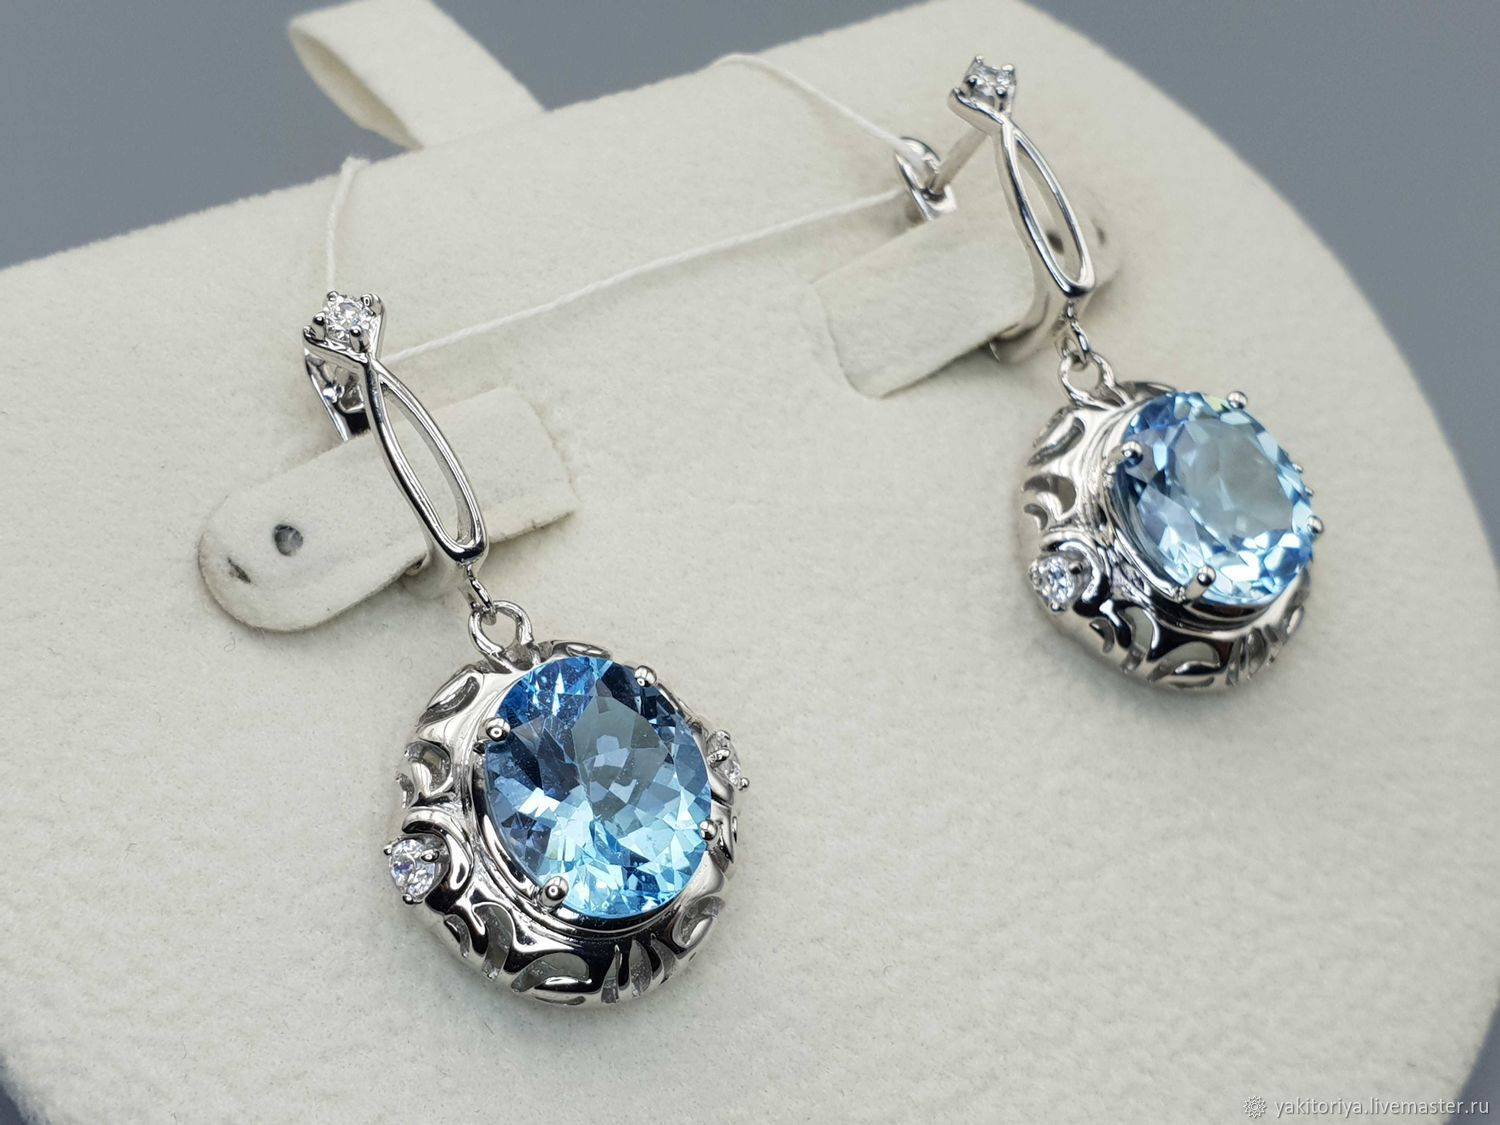 Silver earrings with 12h10 mm topaz and cubic zirconia, Earrings, Moscow,  Фото №1